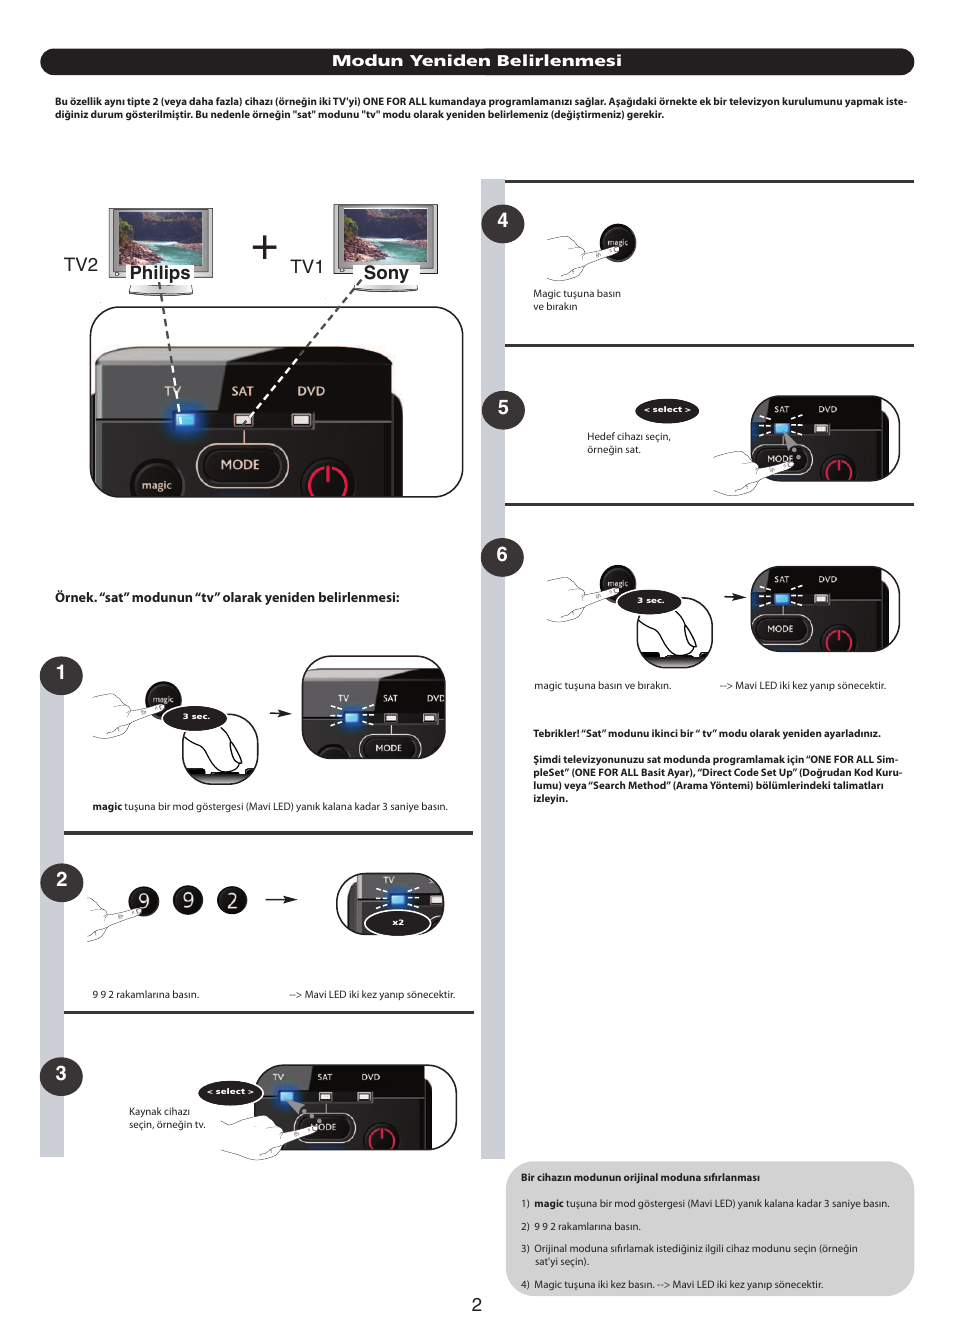 philips sony tv1 tv2 one for all urc 7130 essence 3 user manual rh manualsdir com Philips Schematics Philips Television